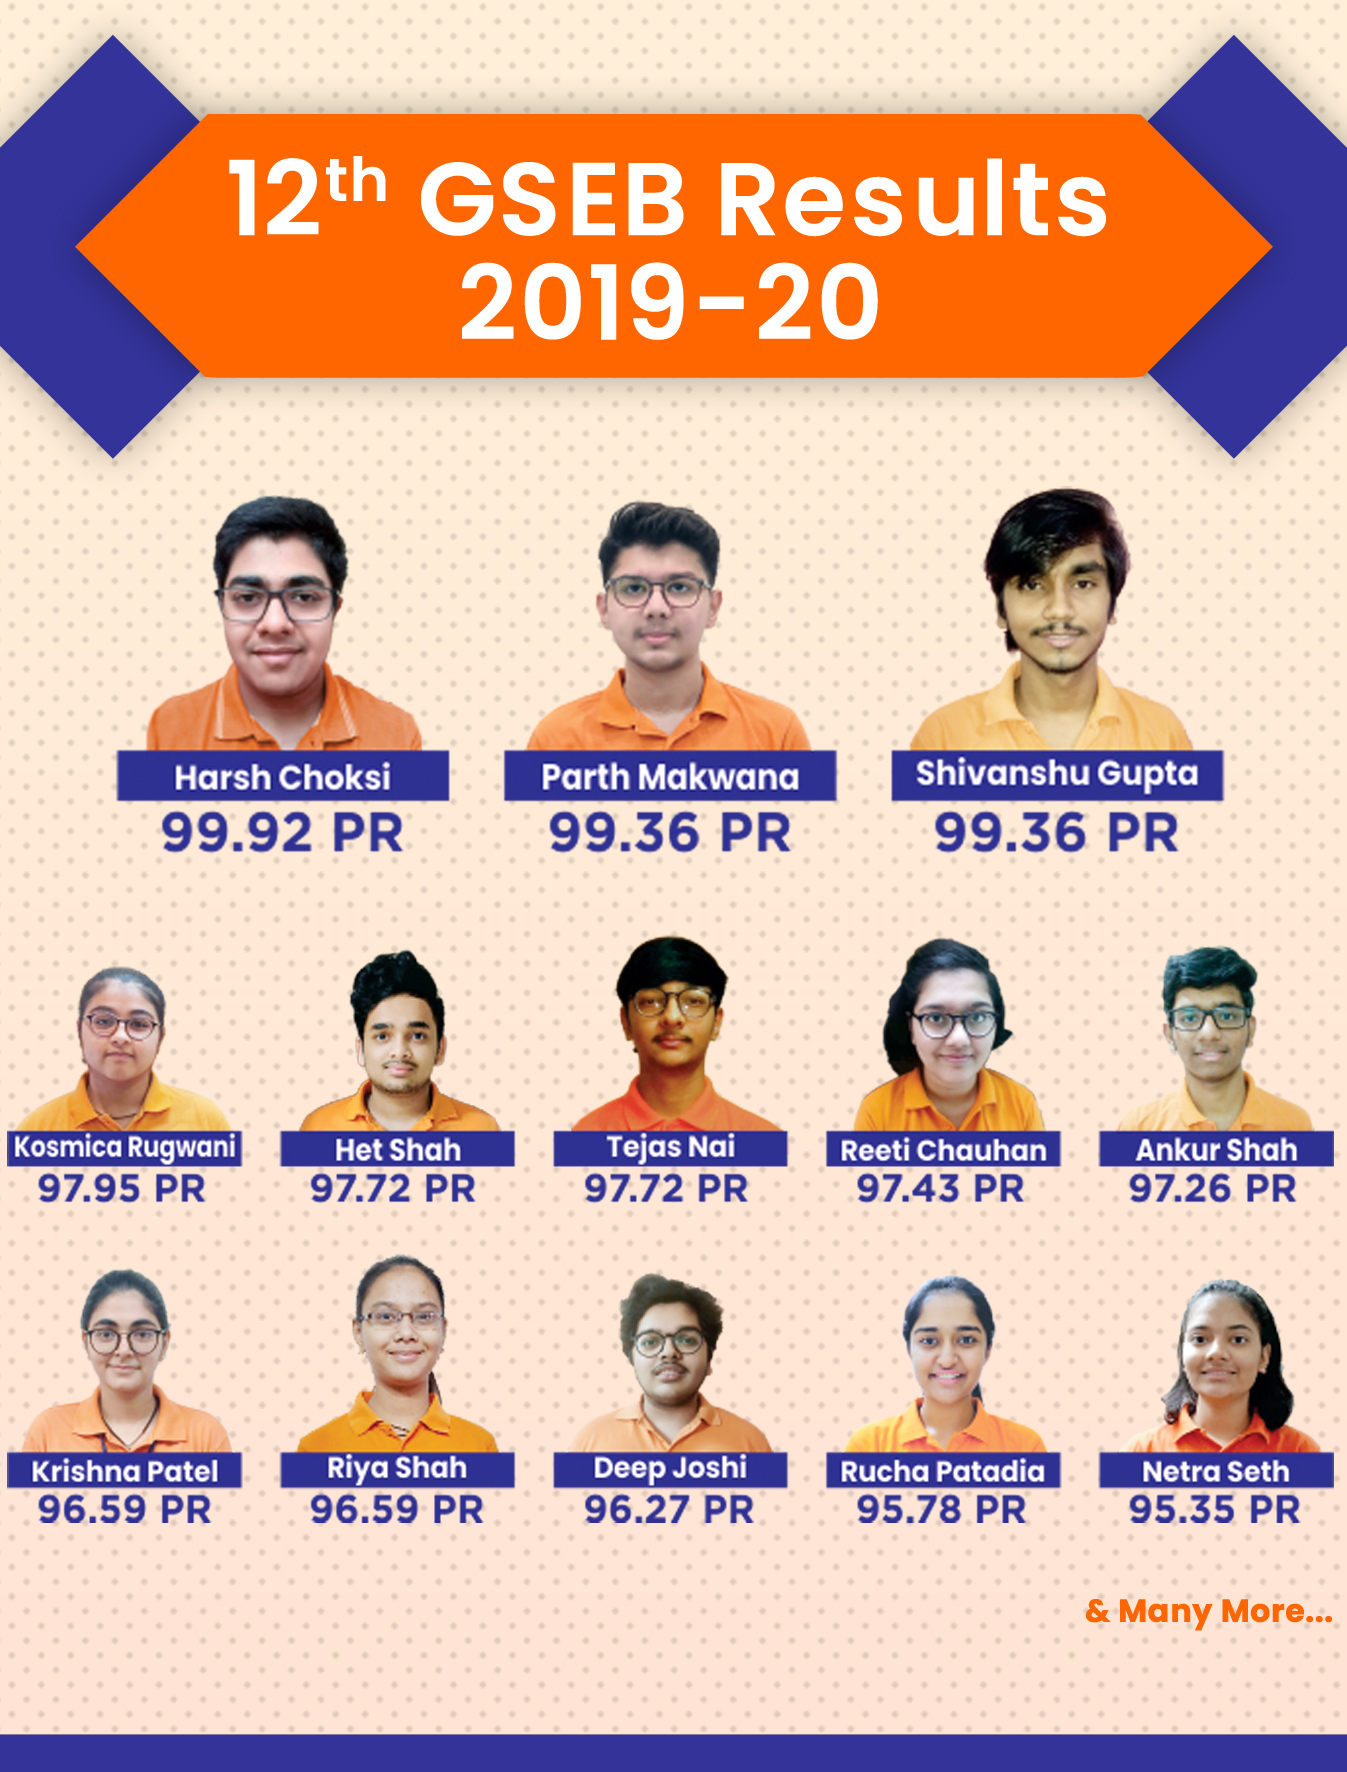 12th gseb result - 2020